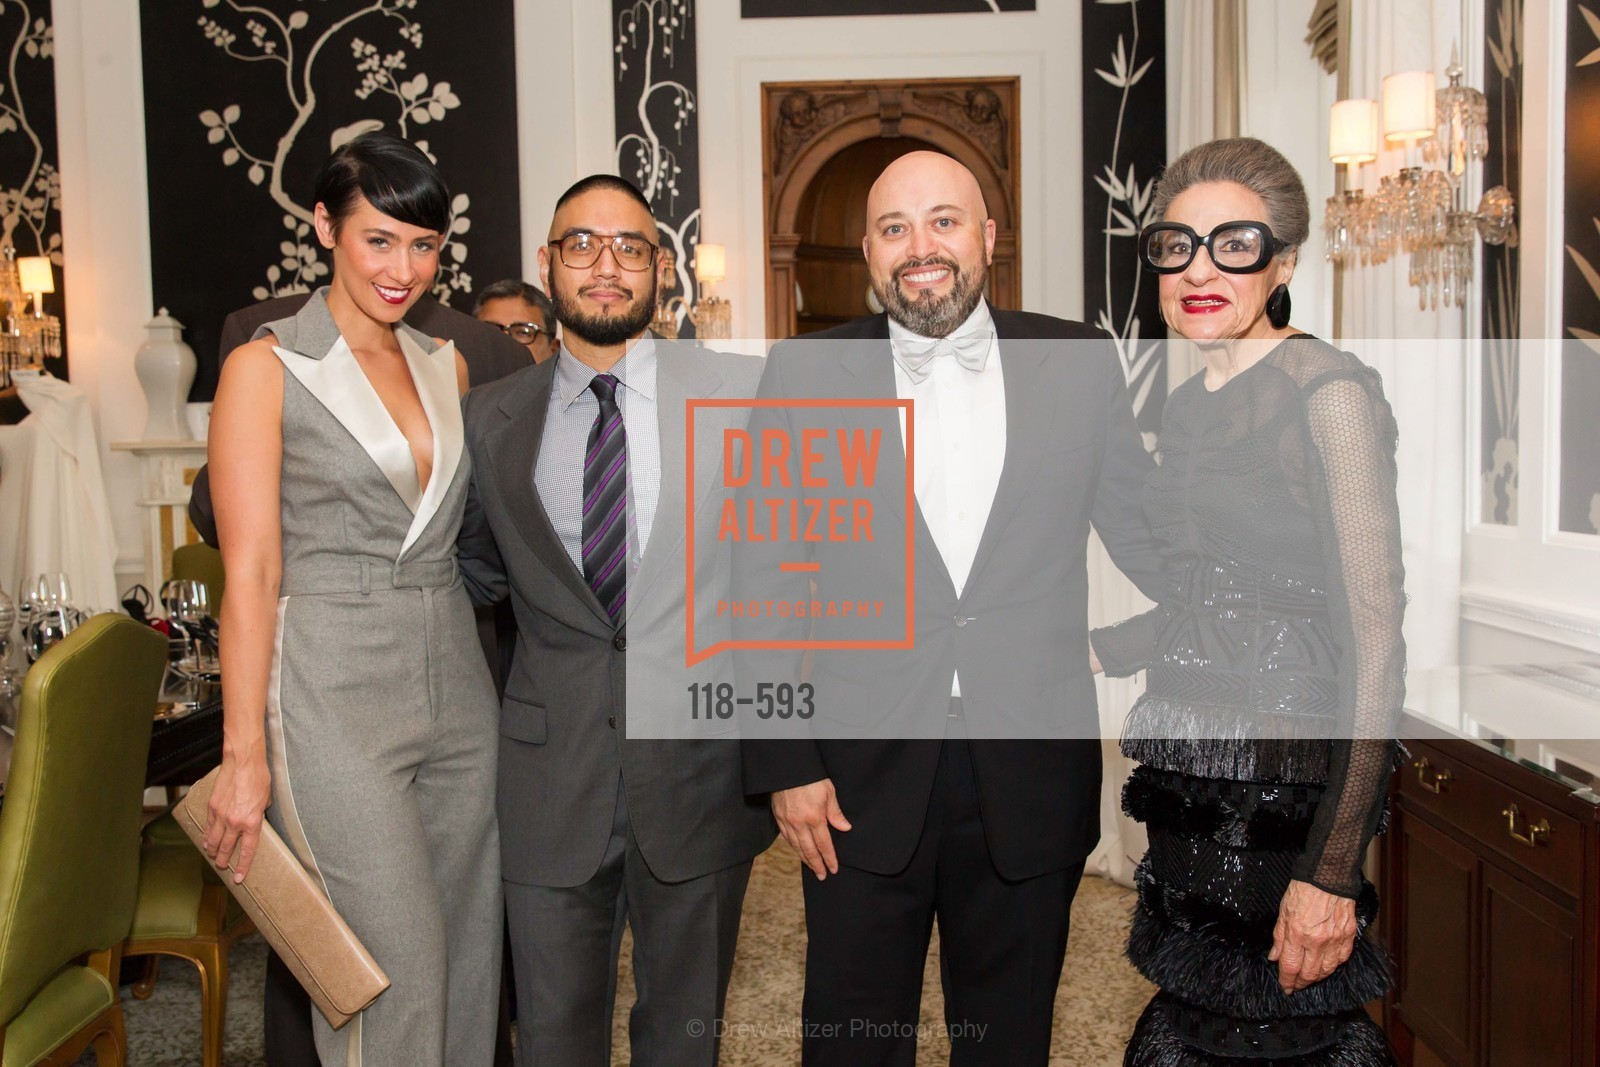 Cristina Crestentini, Wayne Bautista, Alfredo Pedroza, Joy Venturini Bianchi, COUTURE FOR A CAUSE, US, October 4th, 2014,Drew Altizer, Drew Altizer Photography, full-service agency, private events, San Francisco photographer, photographer california